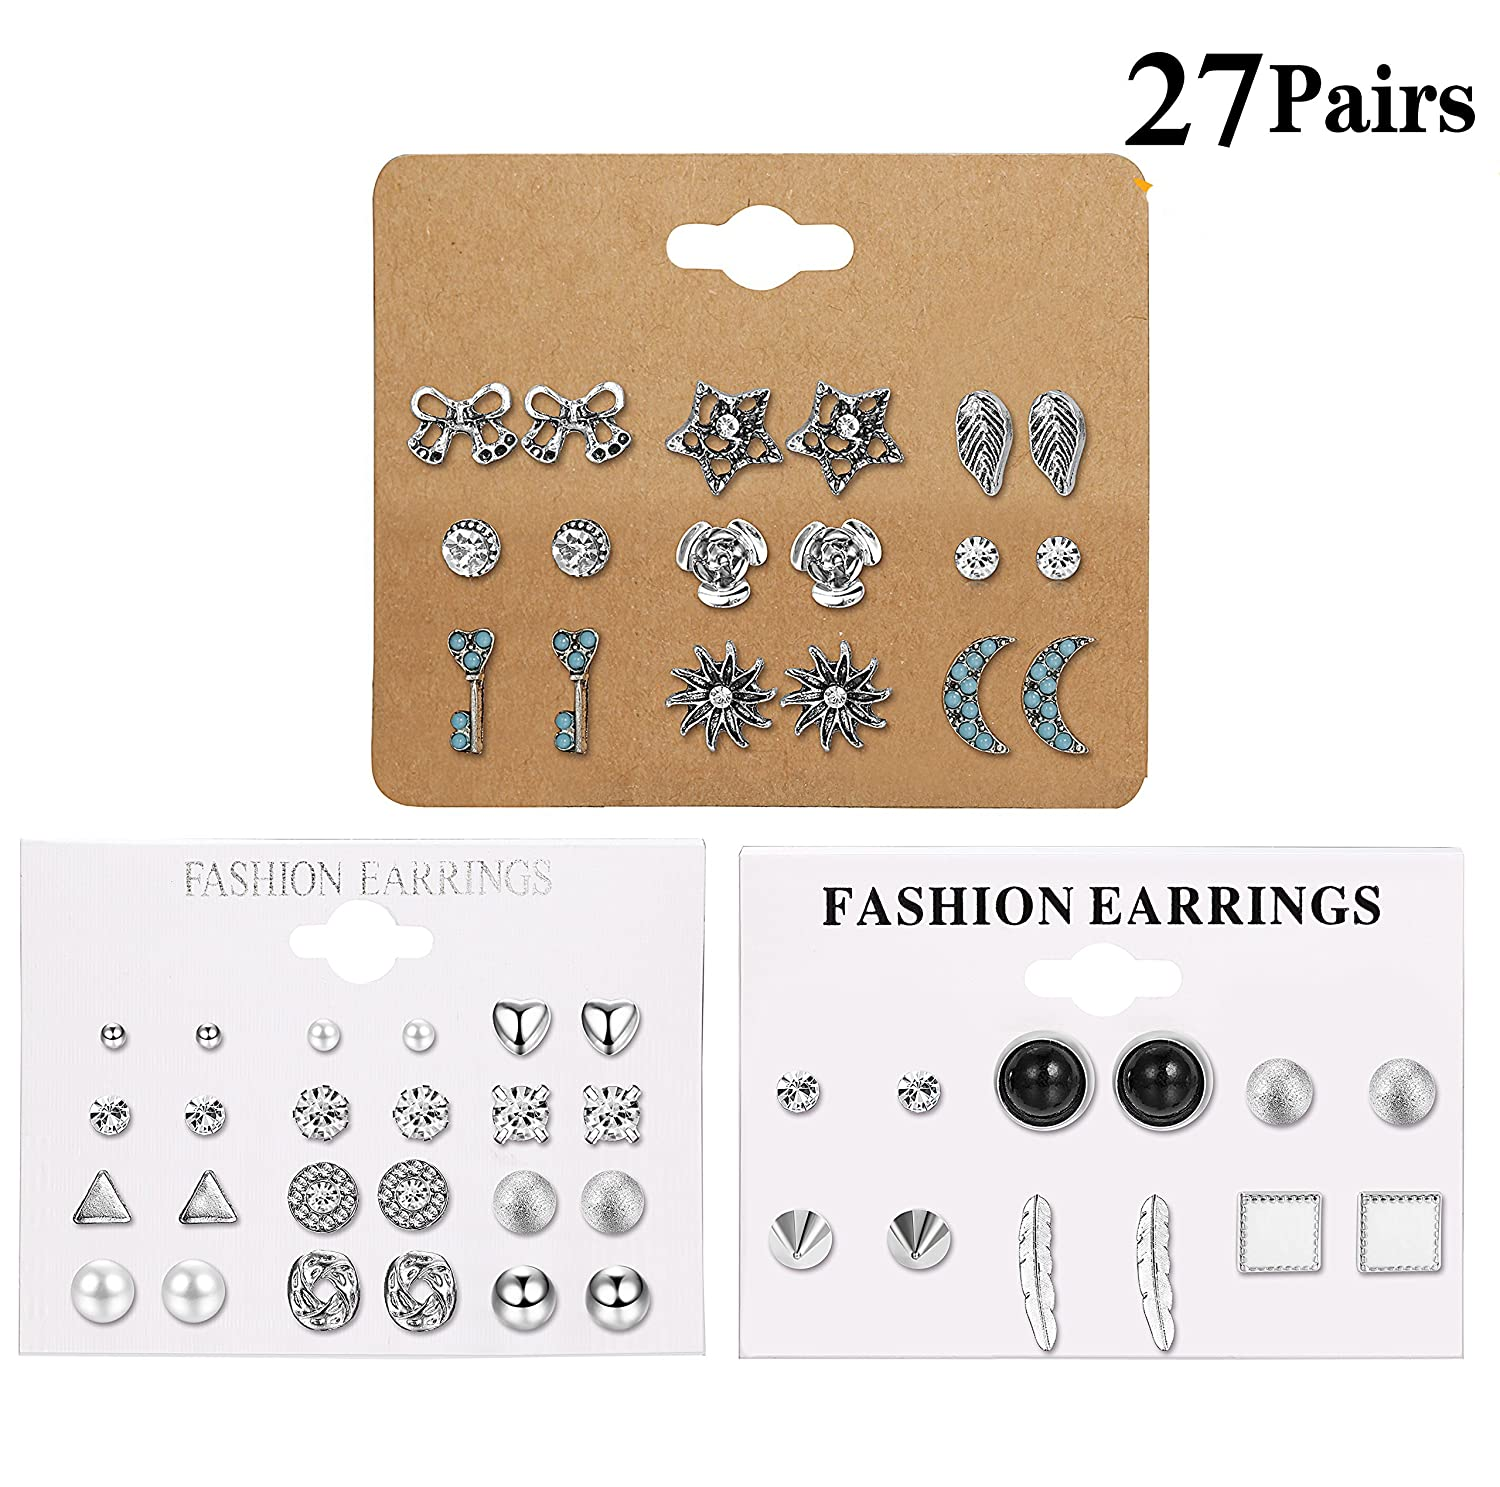 LOLIAS 27 Assorted Multiple Studs Earring Set for Women Girls Bohemia Retro Vintage Style Earrings Card pack L-EAH-EDTZ